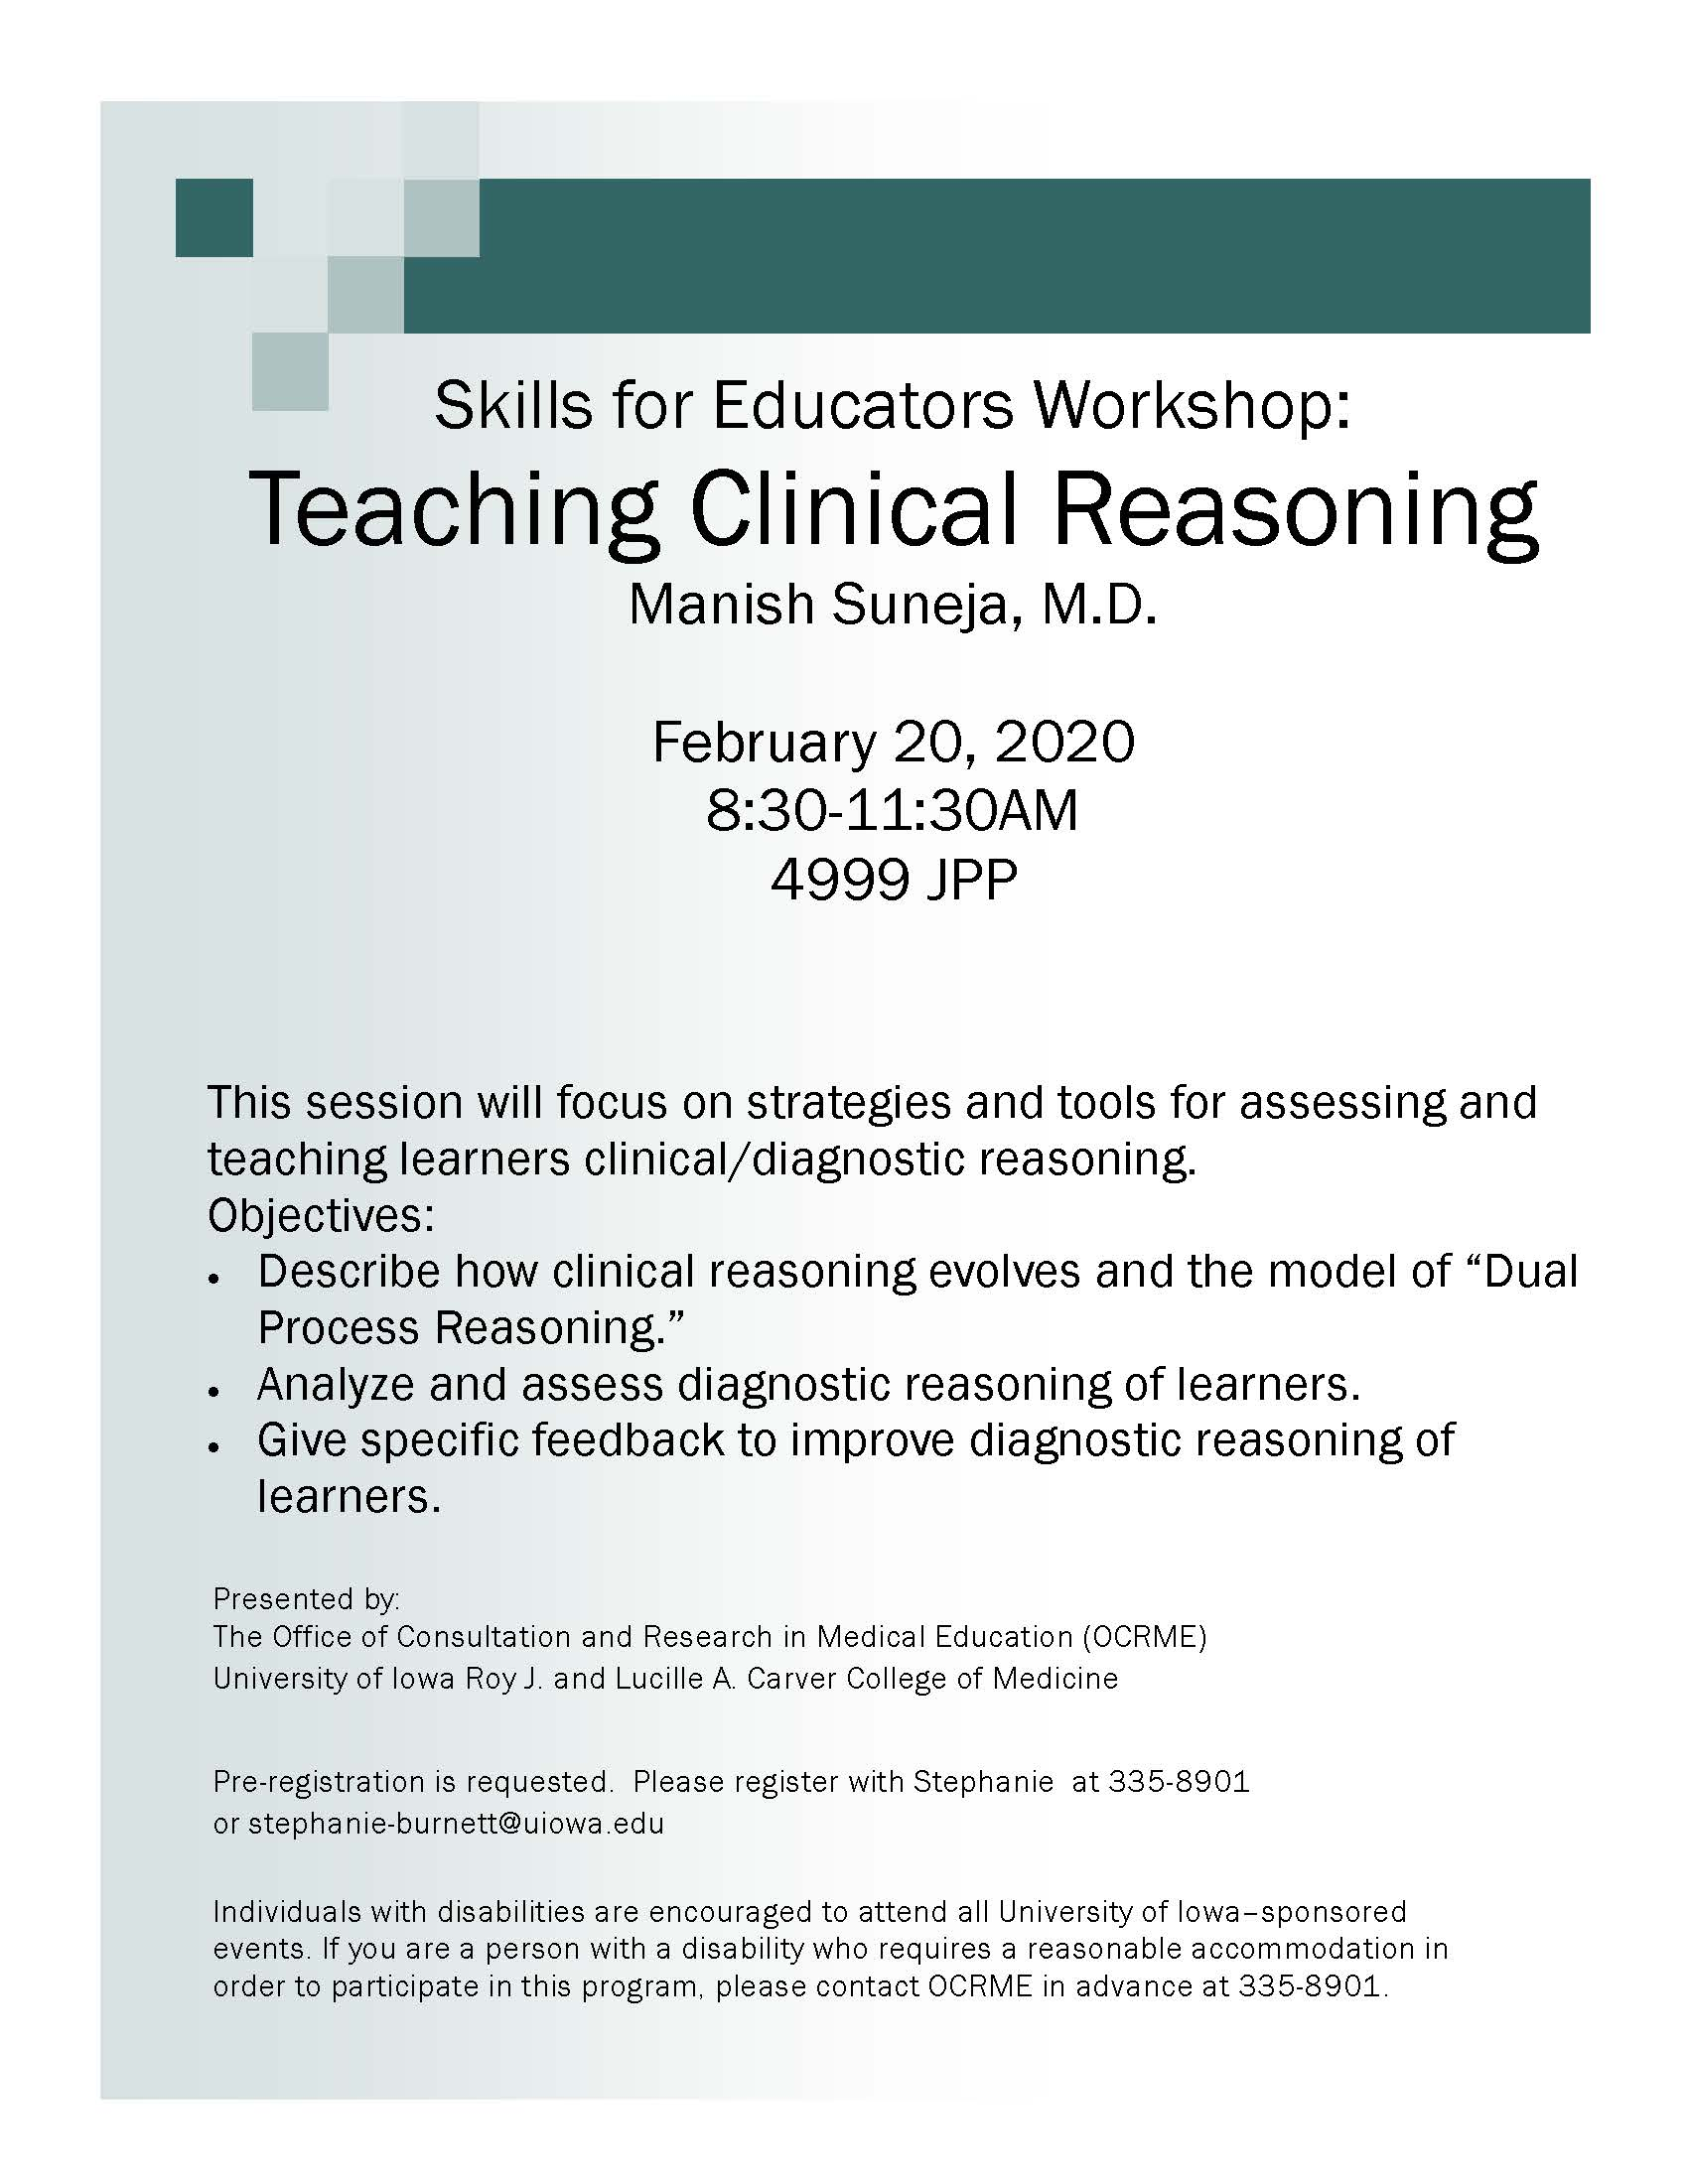 Skills for Educators Workshop: Teaching Clinical Reasoning promotional image